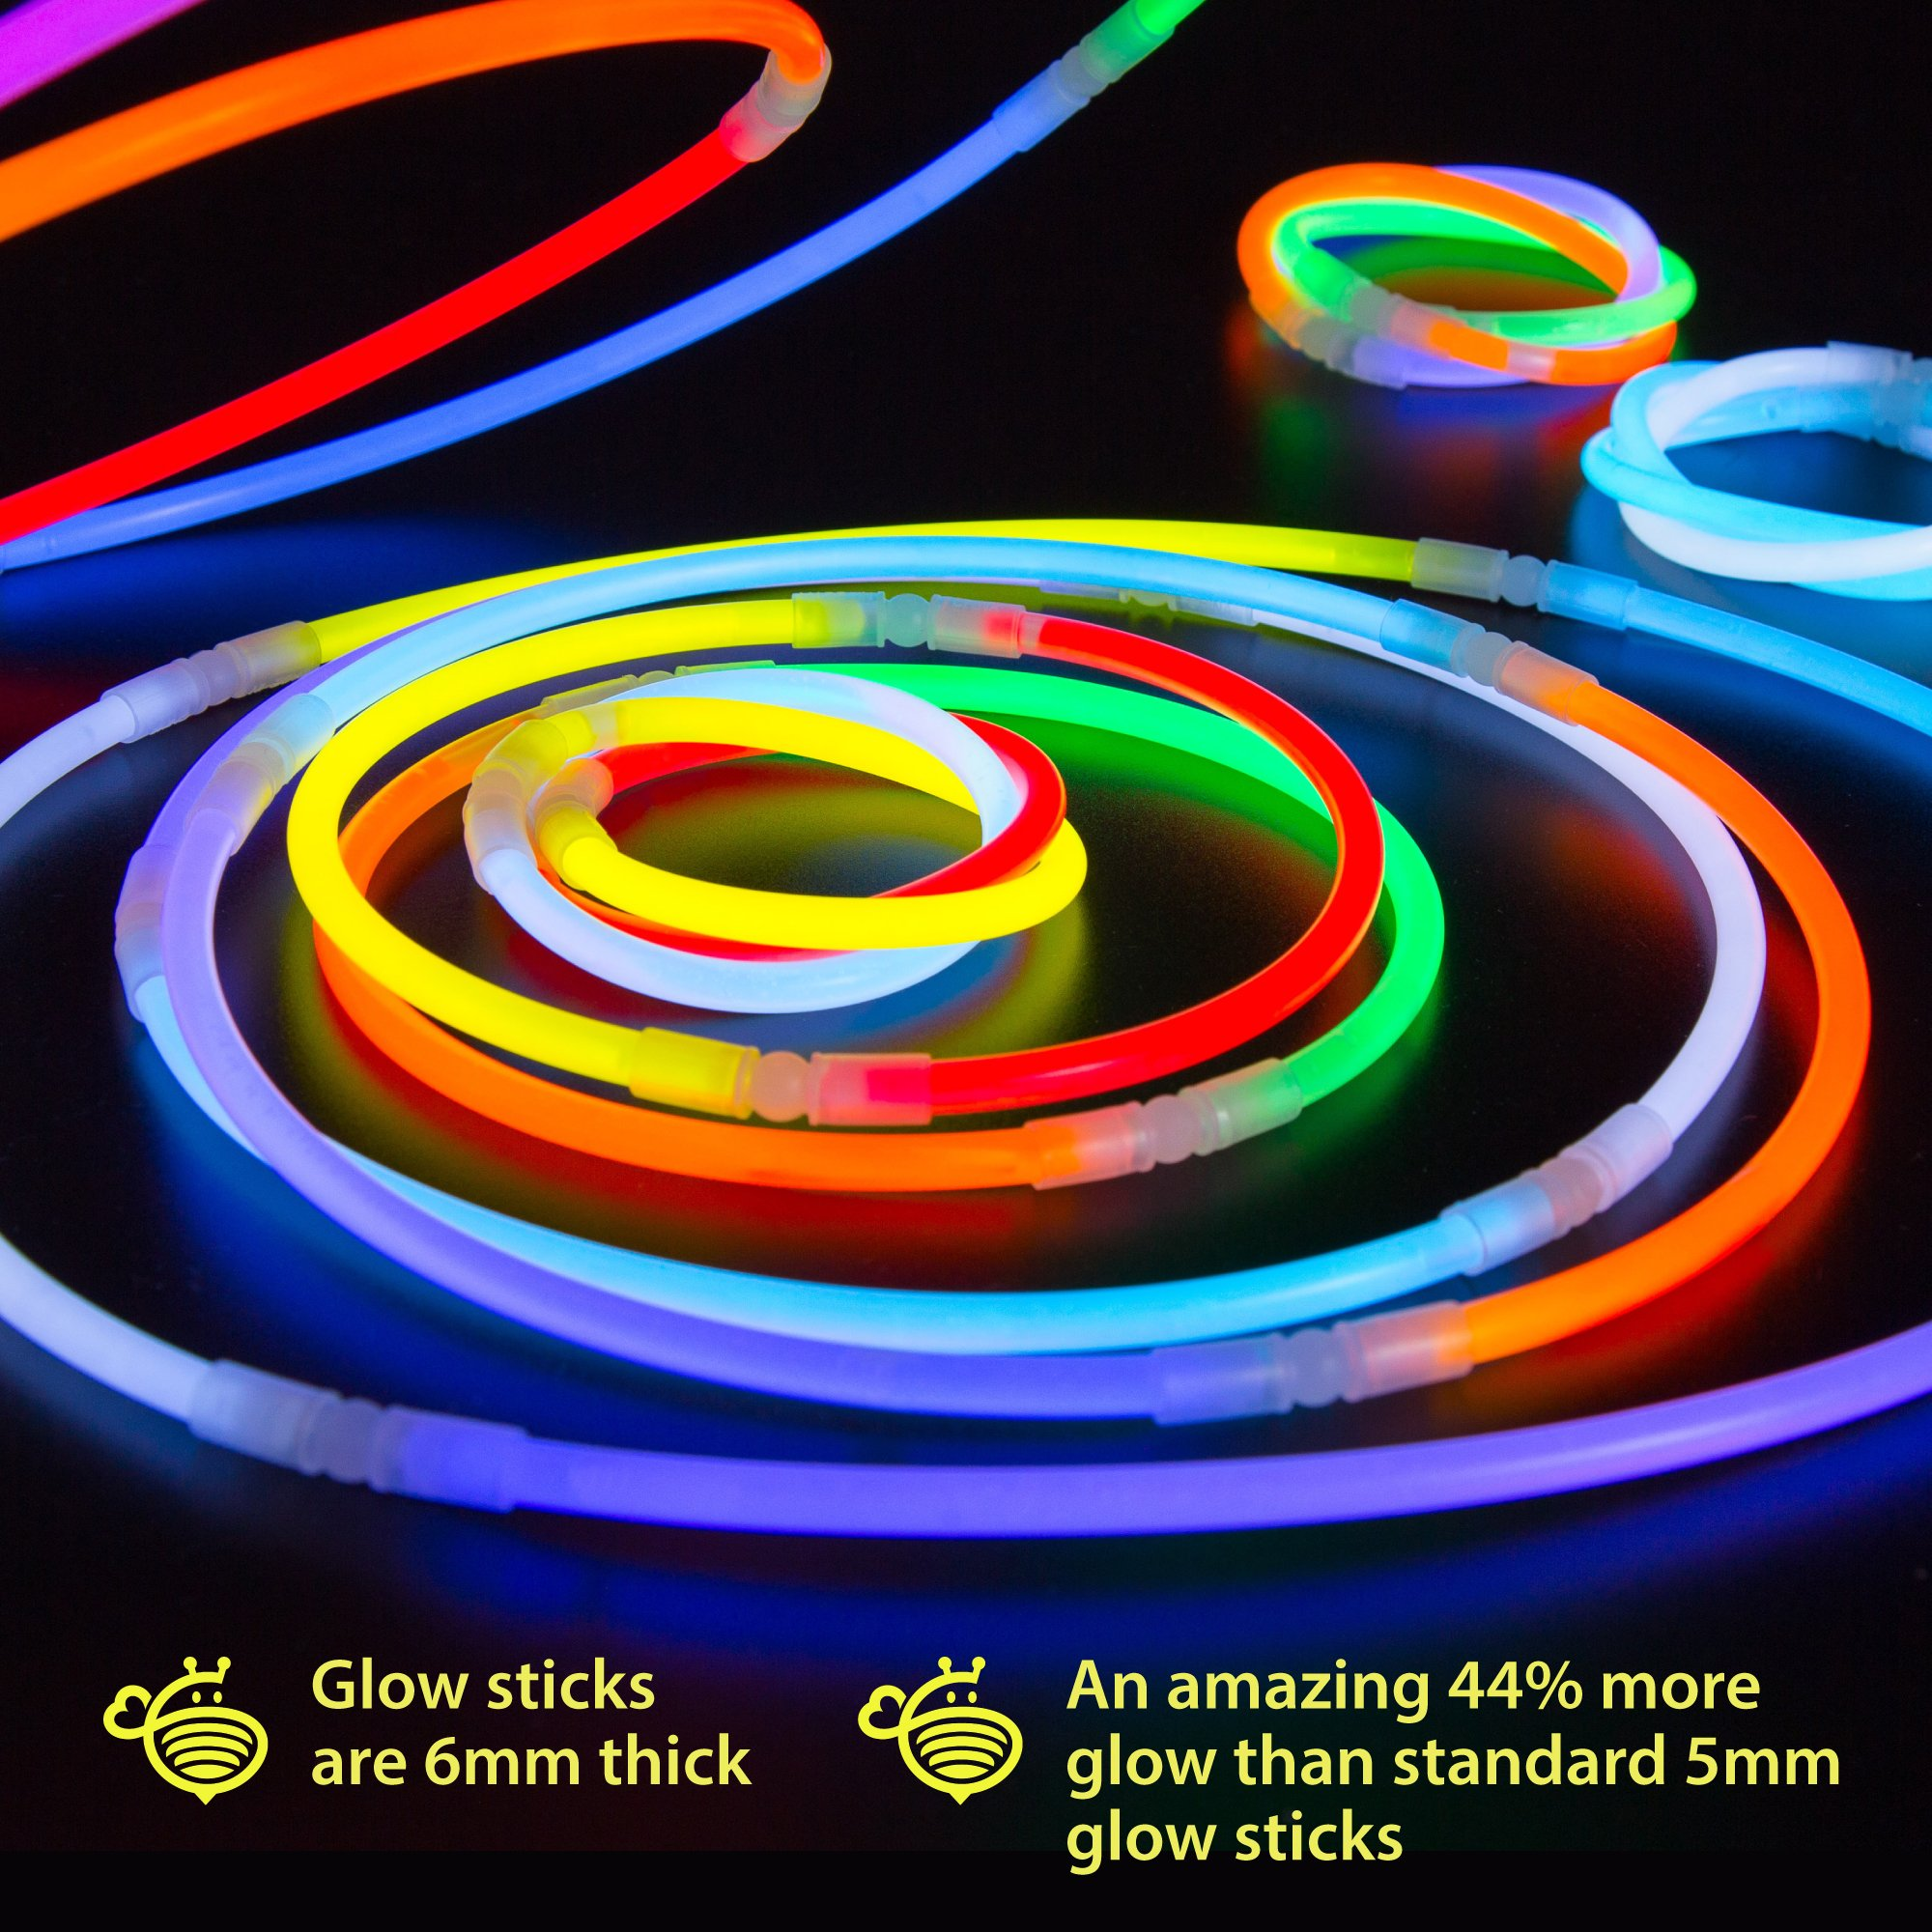 Glow Necklaces Bulk Party Supplies - 100 Glow in the Dark Necklaces - 22 Inch Glow Sticks - Extra Bright Neon Glow Necklace - Strong 6mm Thick - 9 Vibrant Neon Colors - Stuffers for Kids - Mix by CoBeeGlow (Image #5)